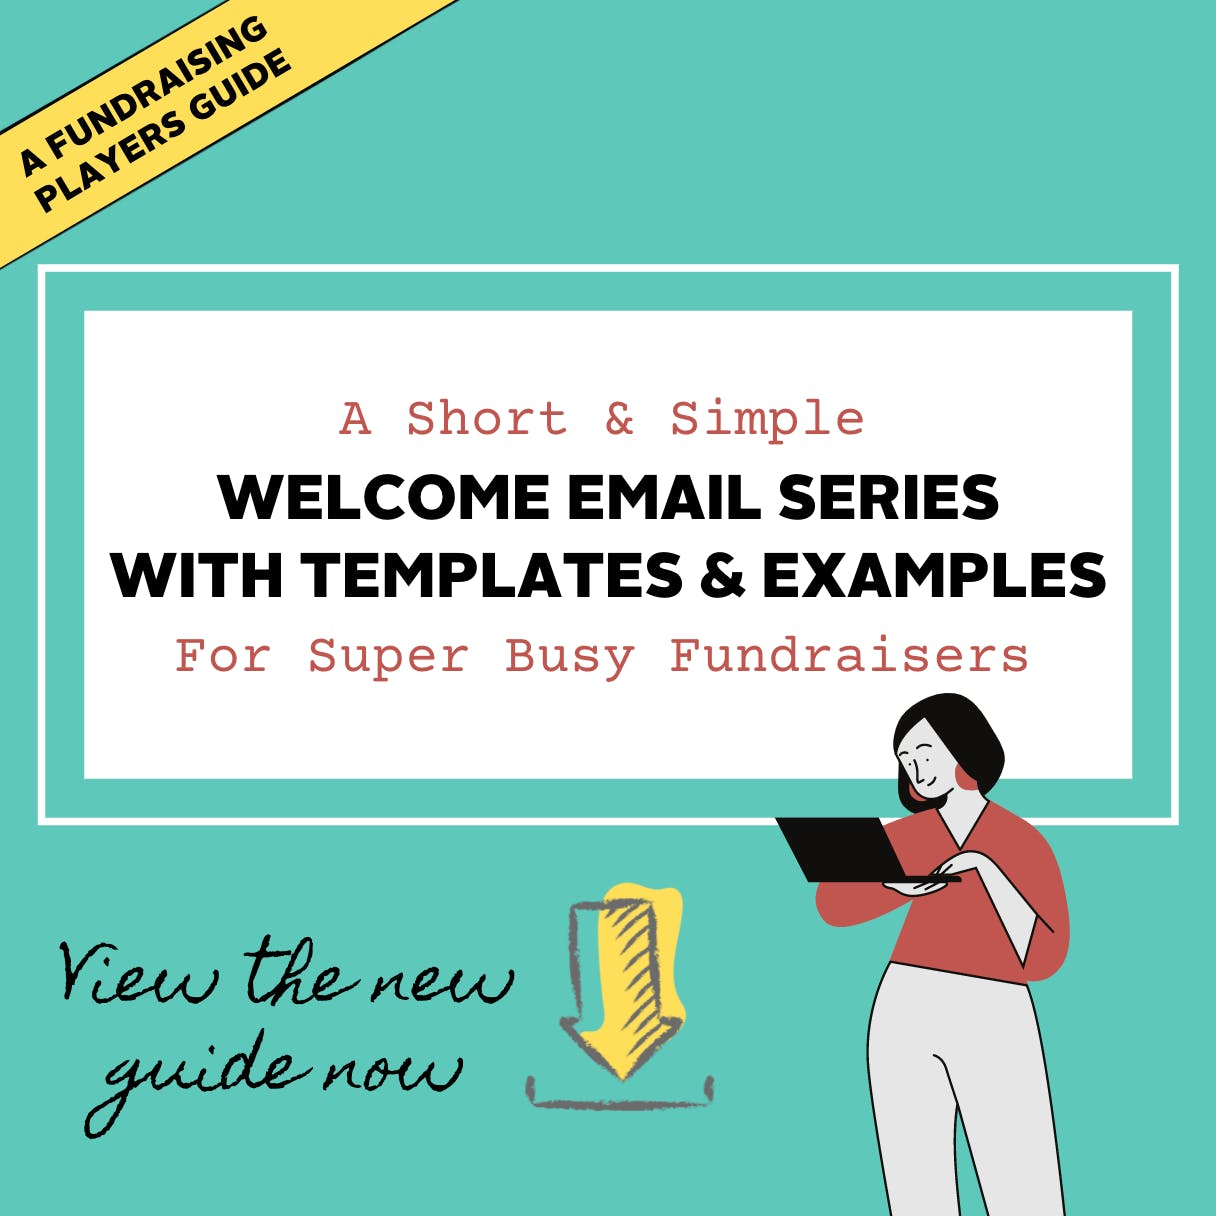 View the new guide now!